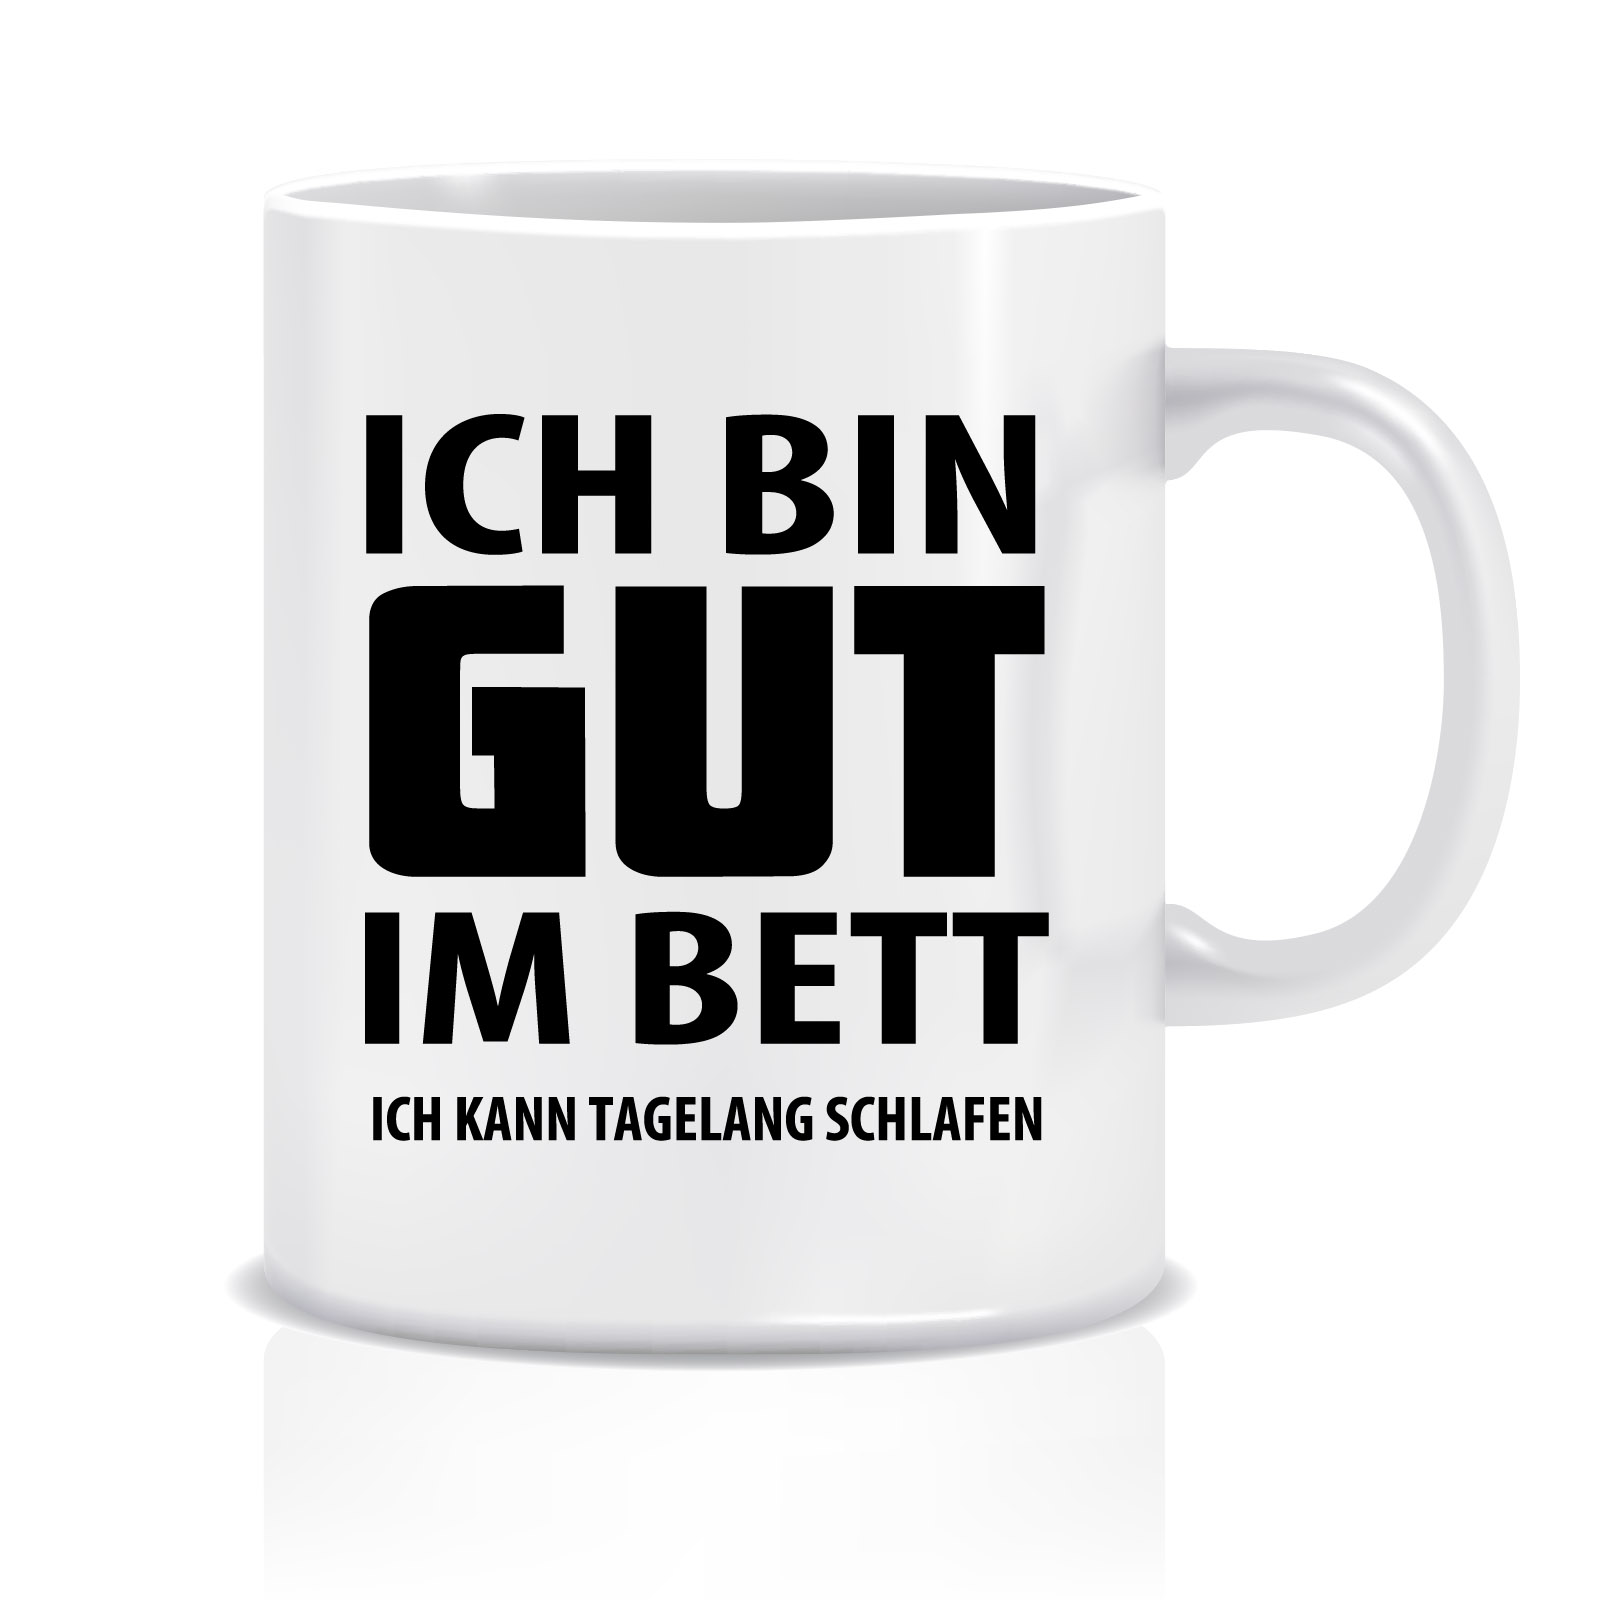 tasse 39 spr che 39 spruch humor fun lustig spa becher fototasse geschenk ebay. Black Bedroom Furniture Sets. Home Design Ideas